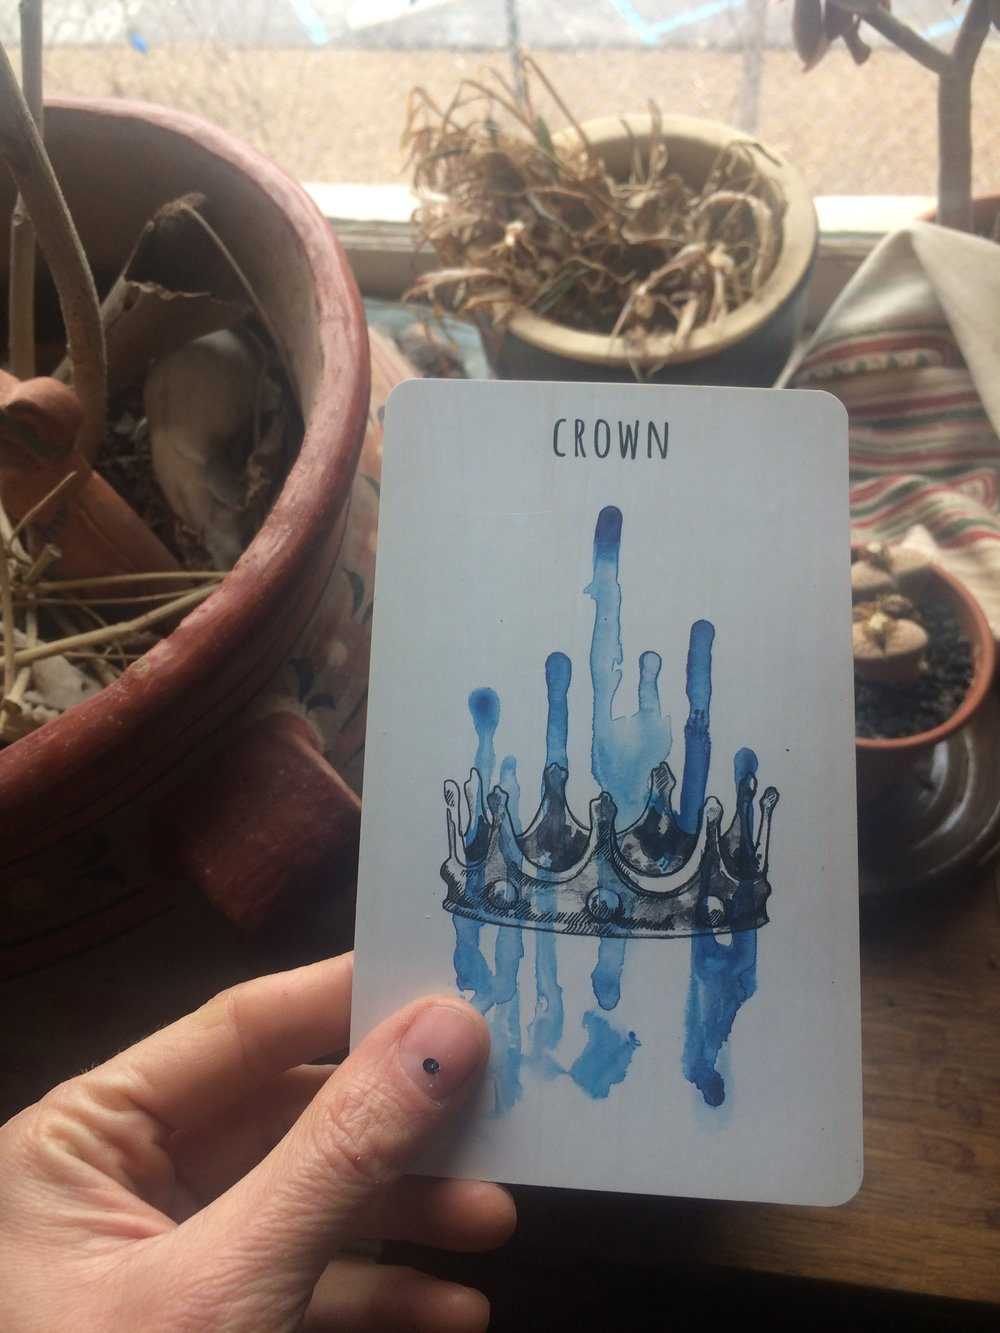 The Scrying Ink, Crown, which is badass.